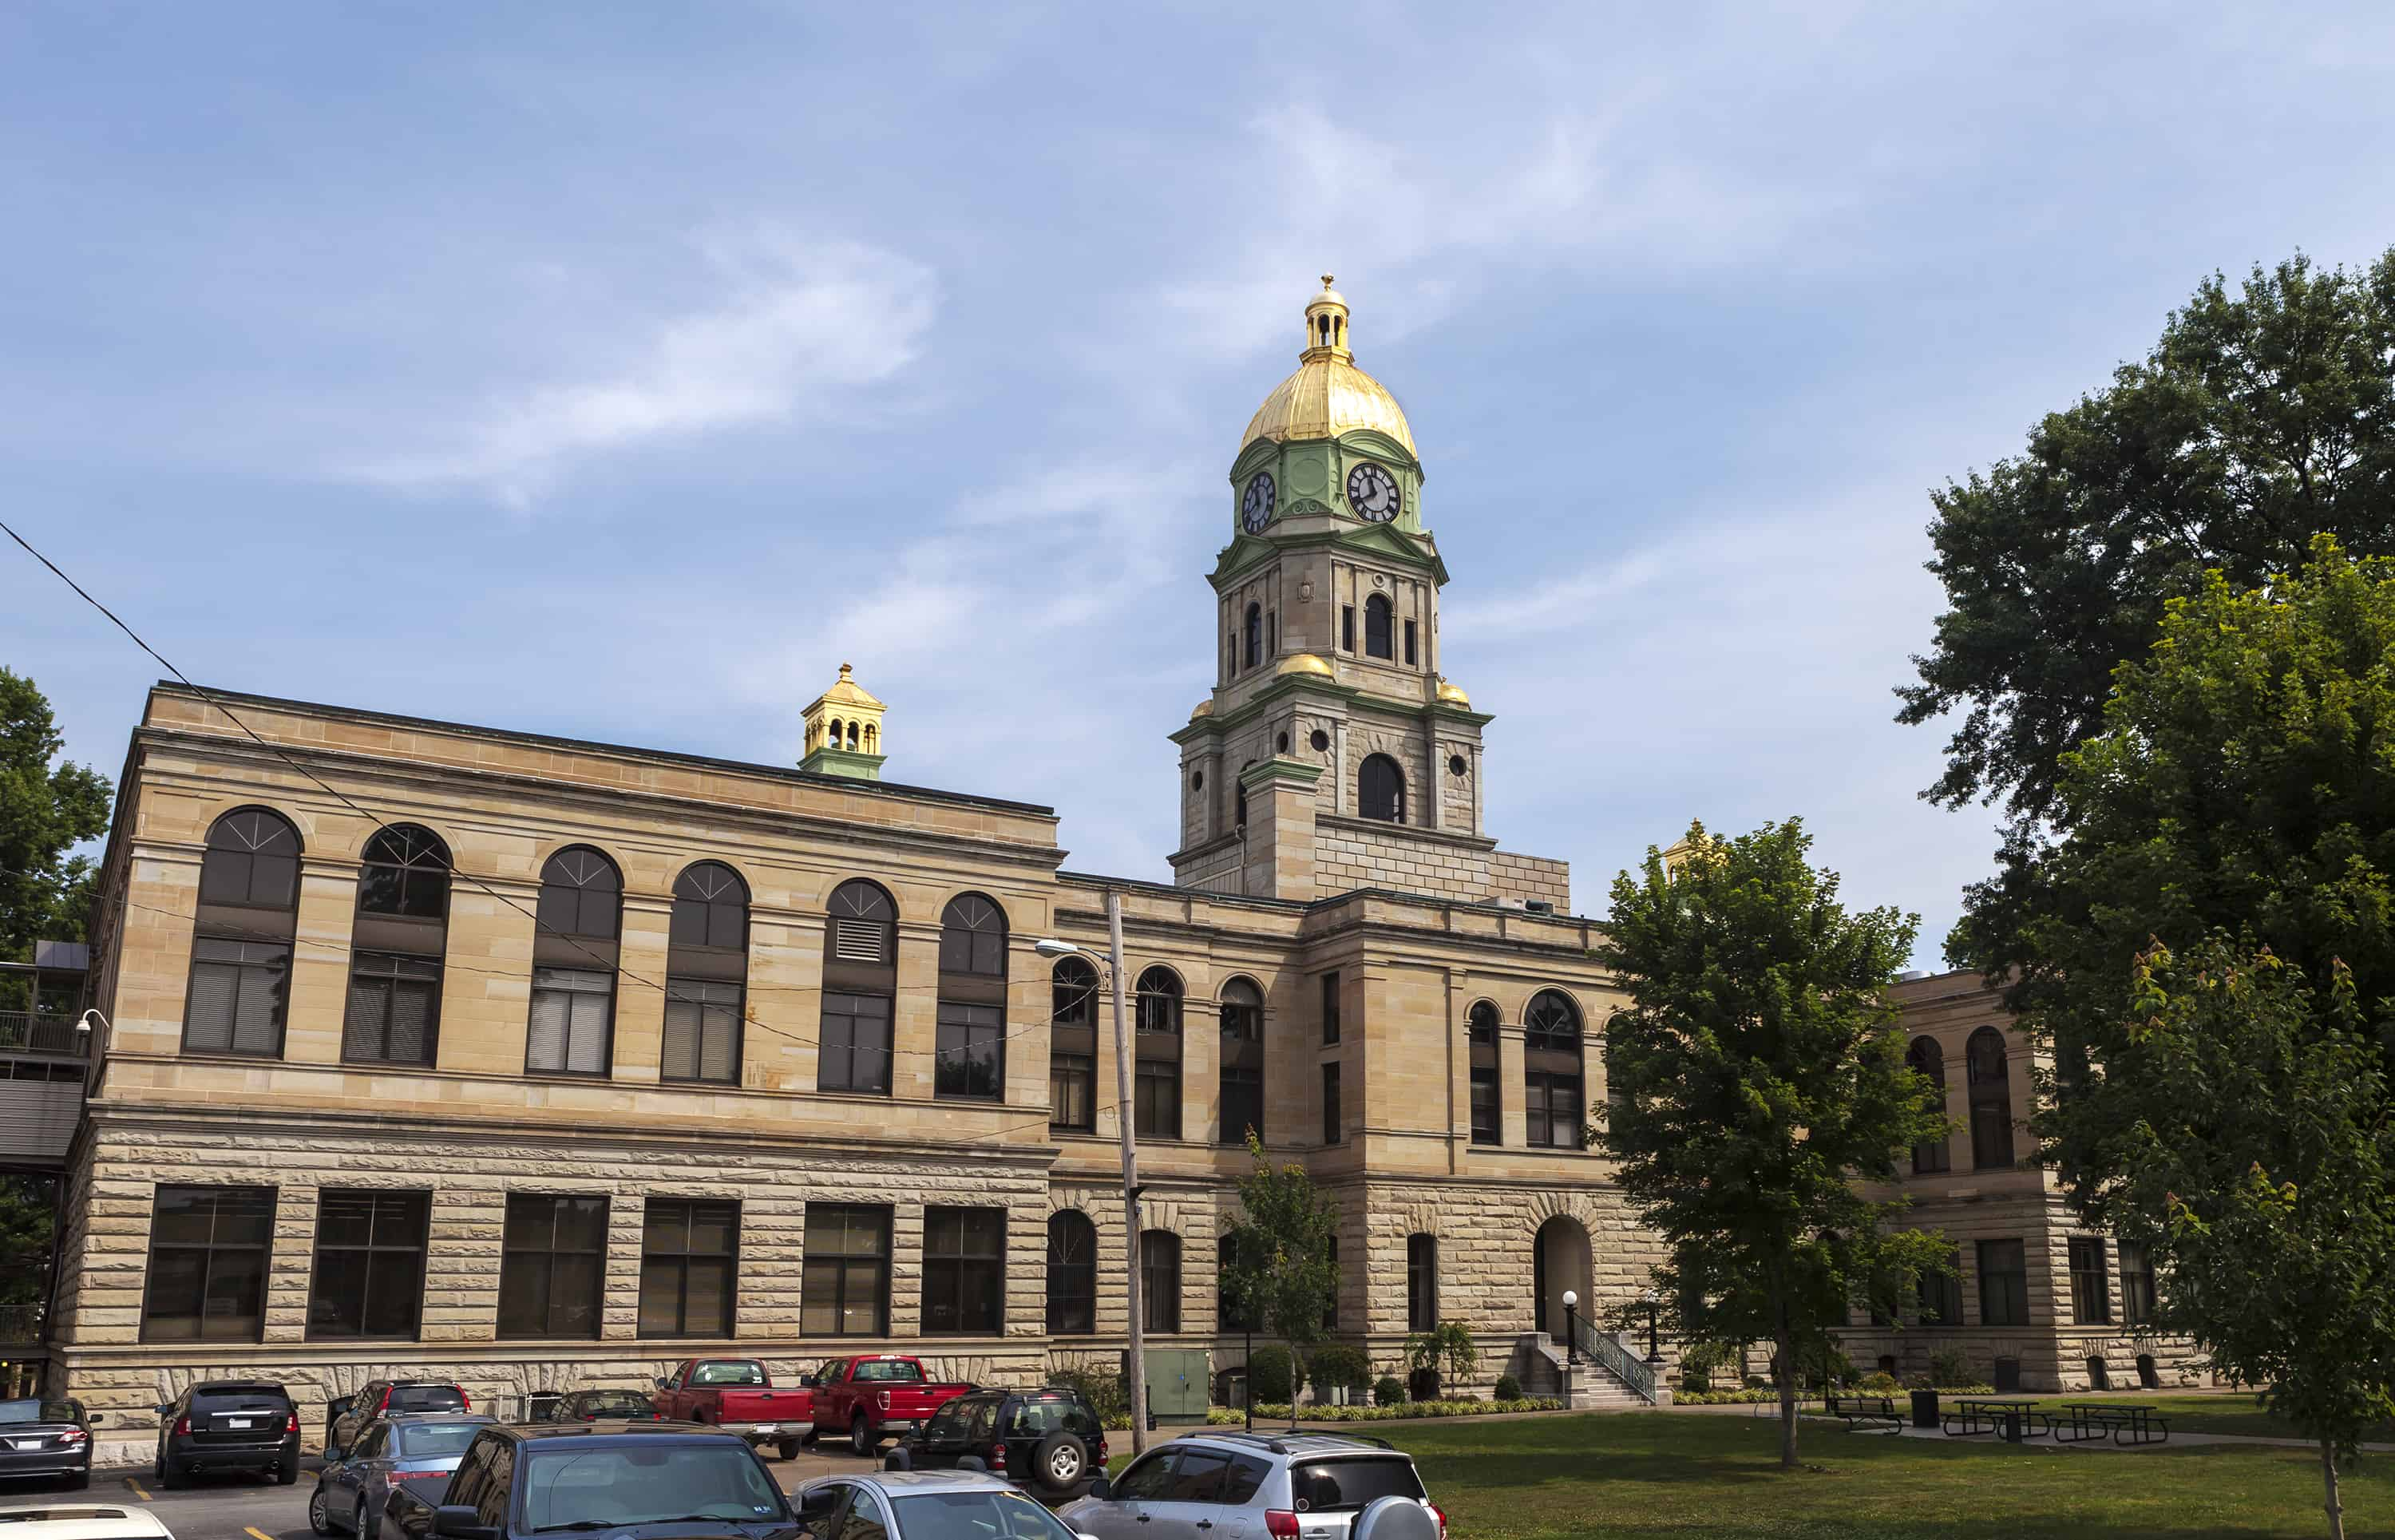 The Cabell County Courthouse in Huntington, West Virginia was built in 1899.